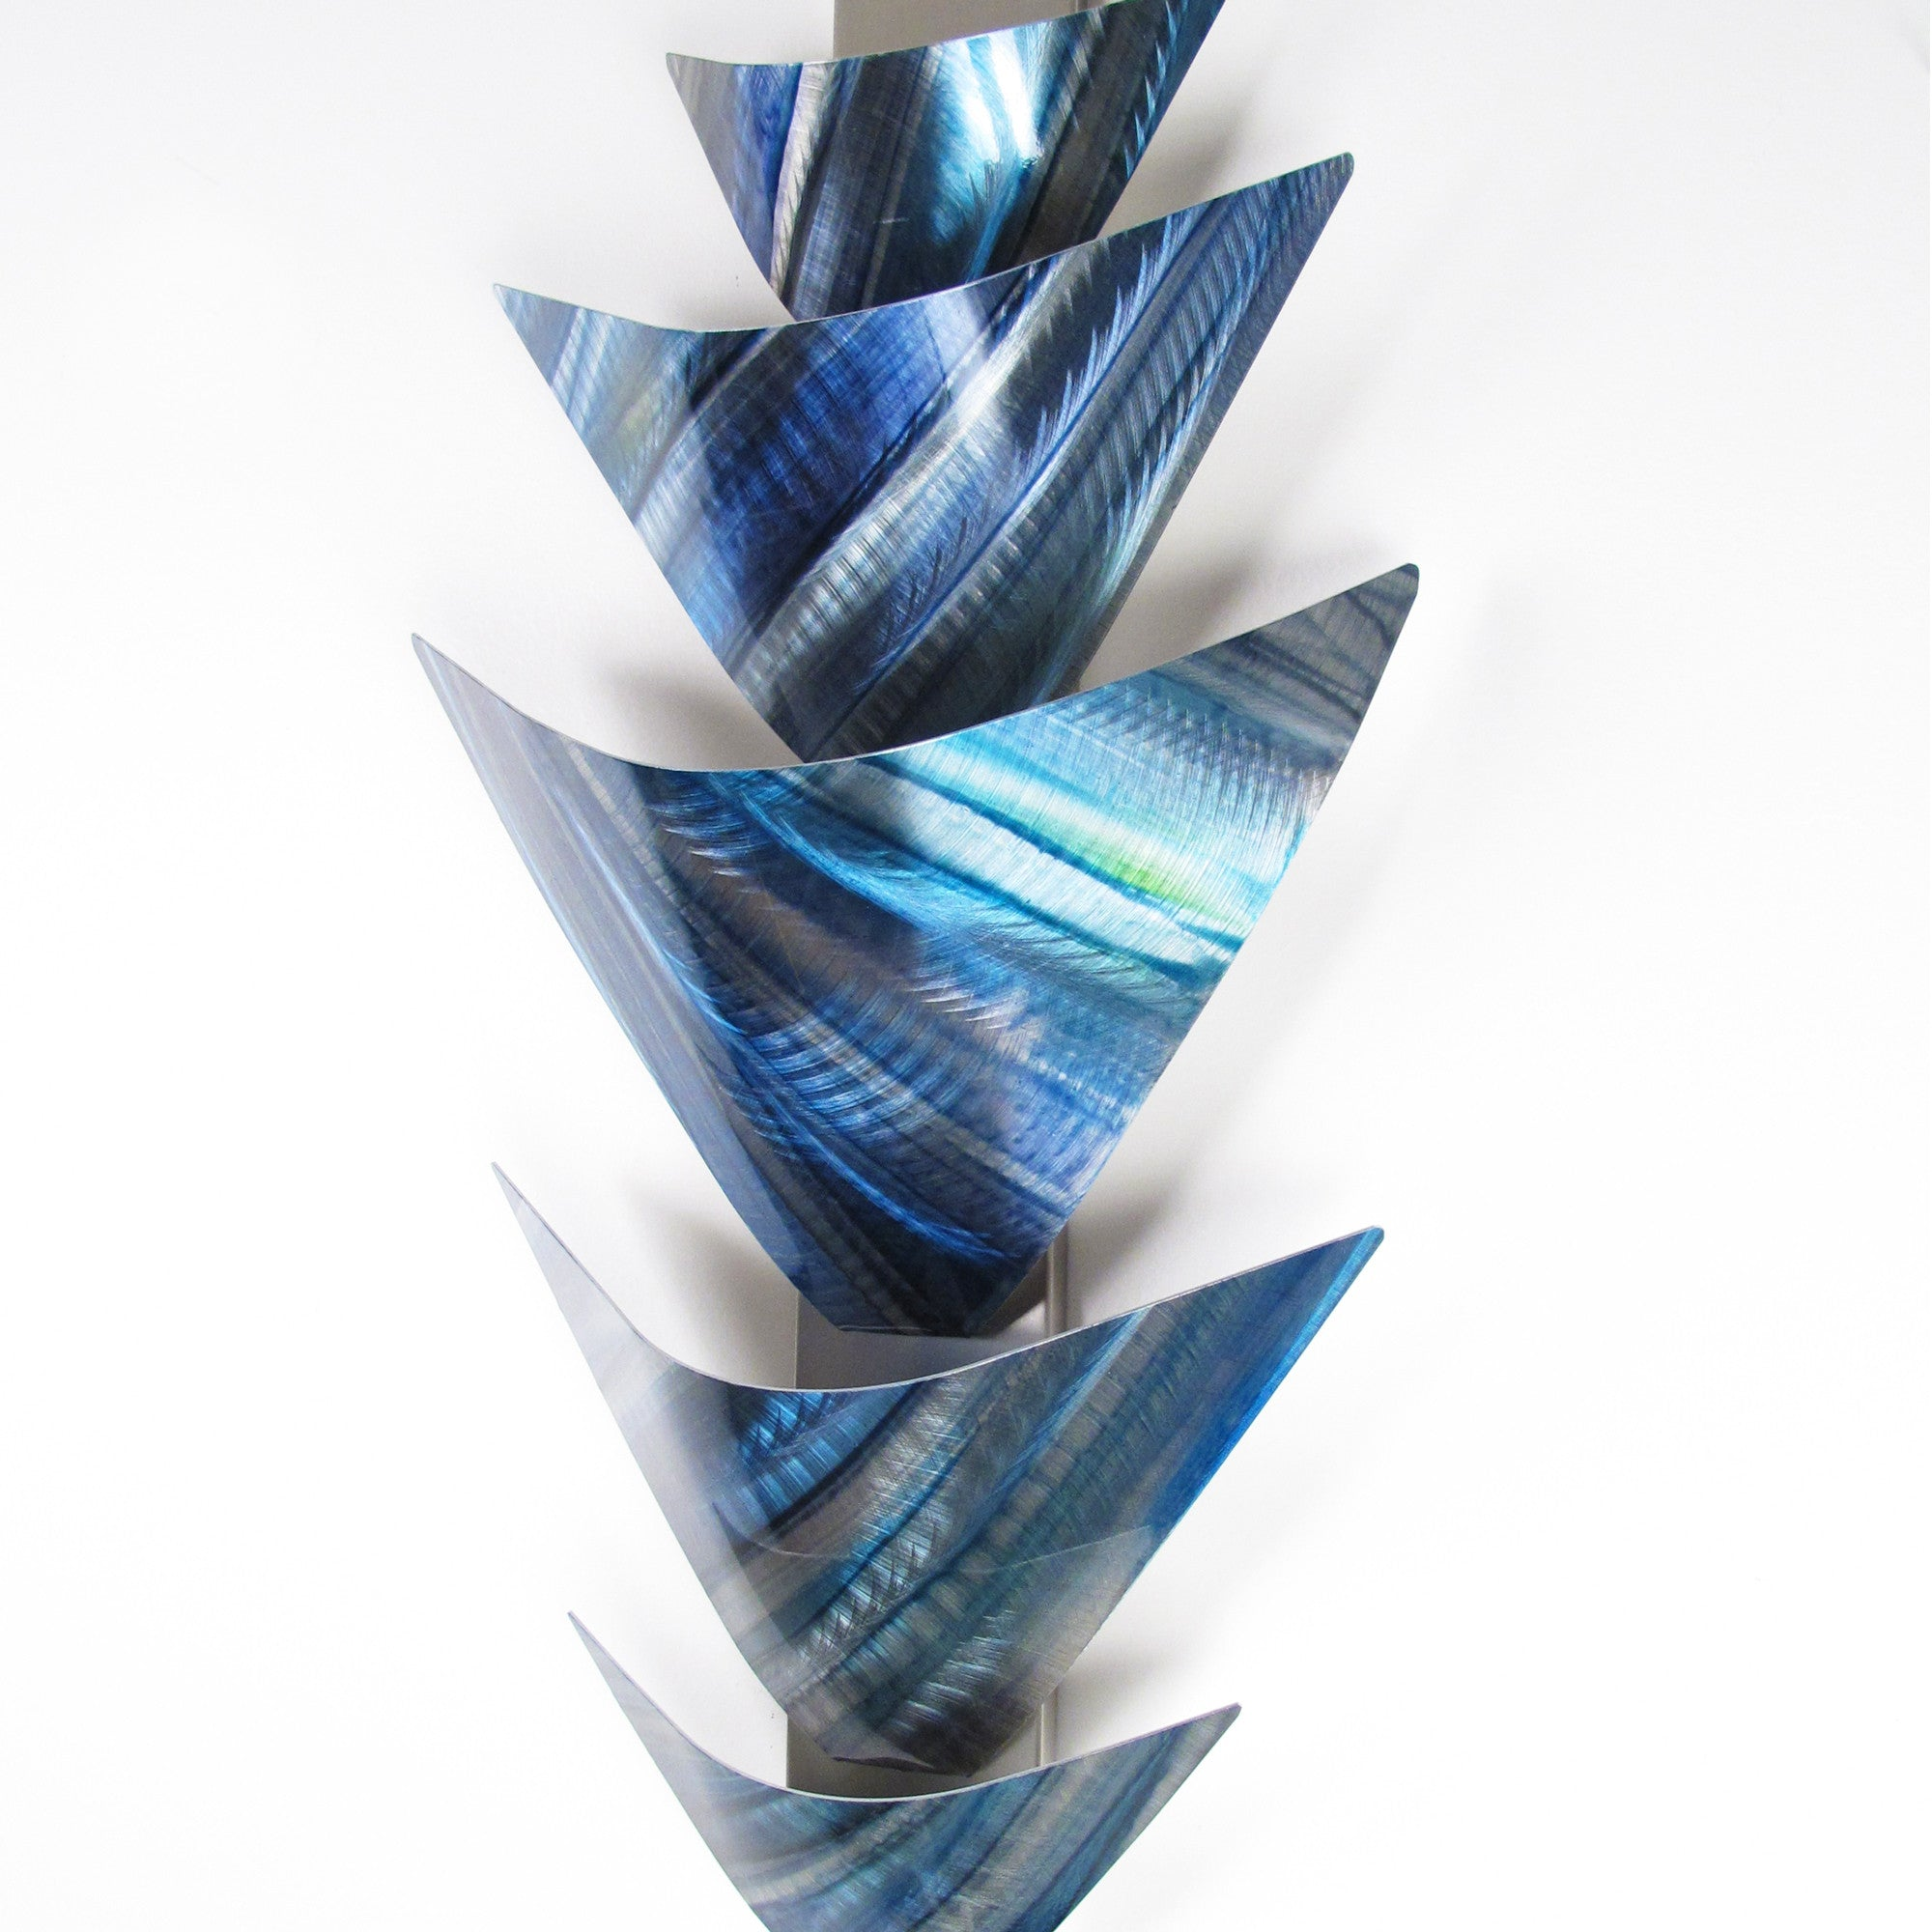 "Blue Metal Wall Art Prepossessing Aurora Torchiere Series"" 40""x24"" Modern Abstract Metal Wall Art Inspiration"